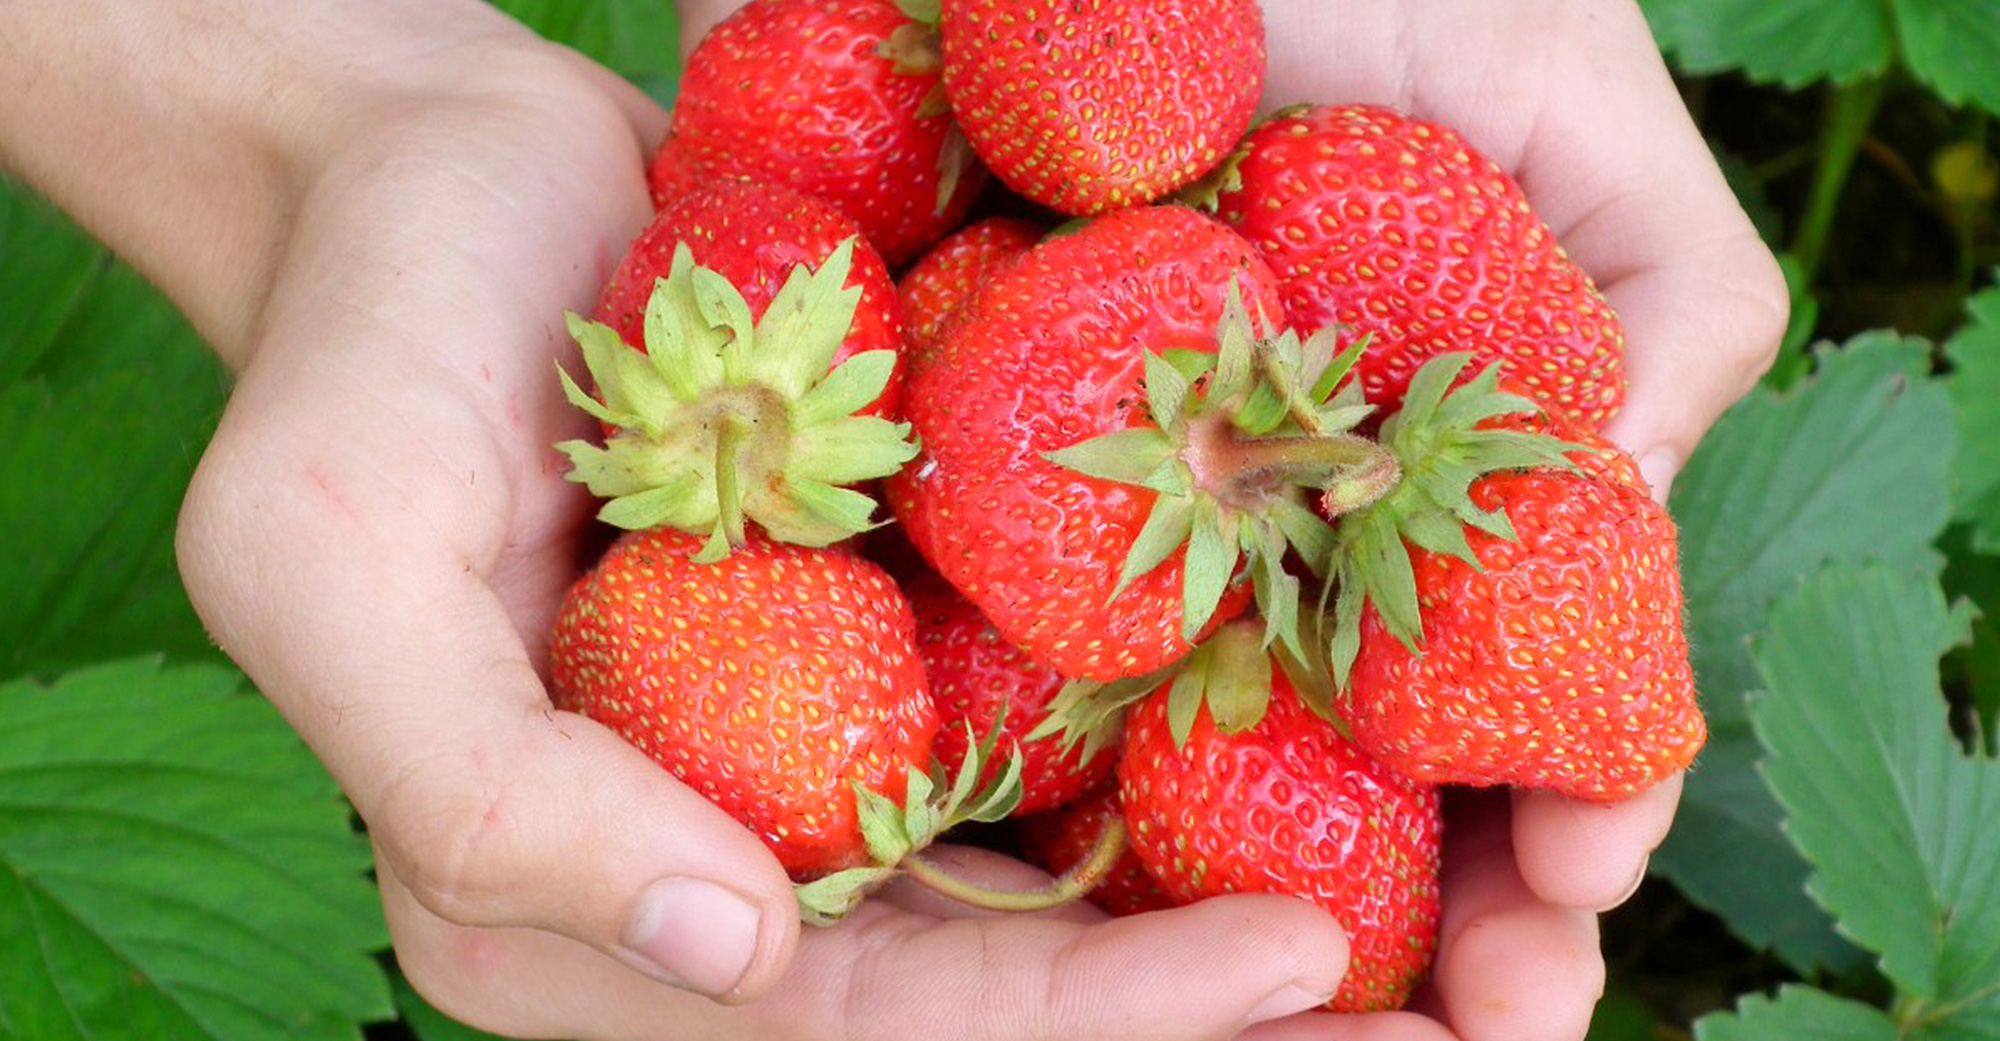 AI Experts and Growers: Strawberry growing competition